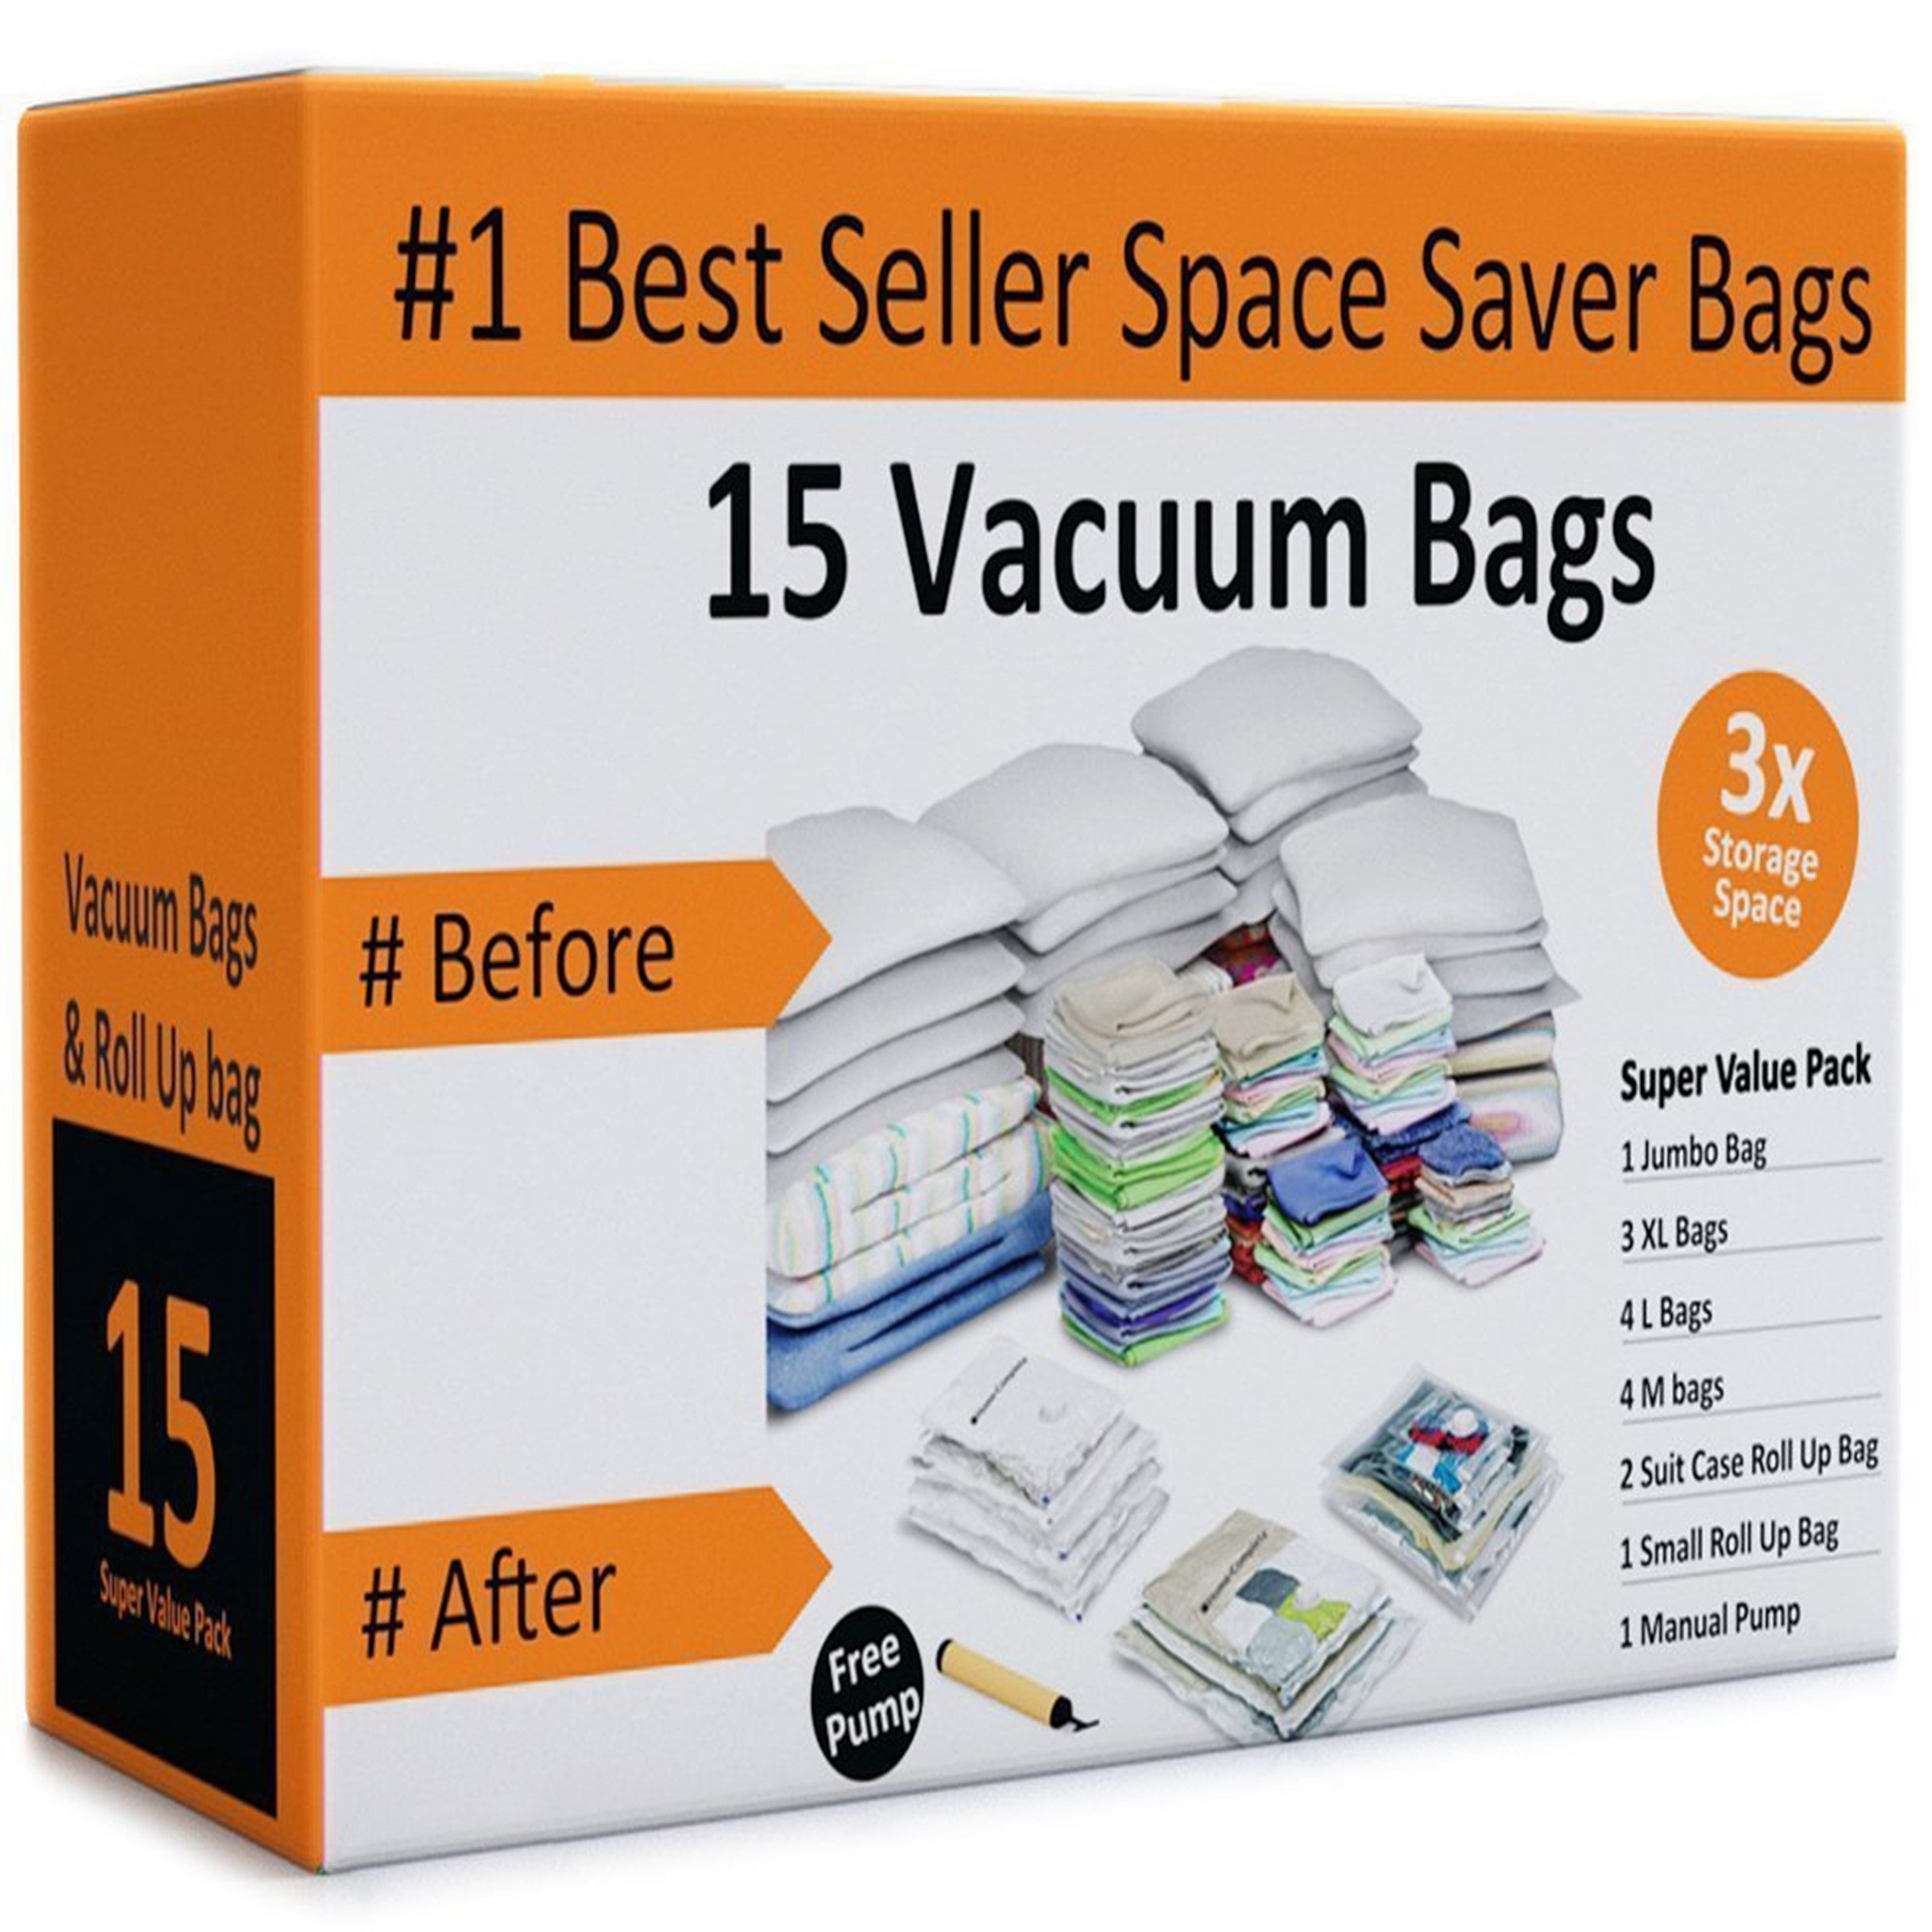 Everyday Home 83-77 Vacuum Storage Space Saving Air Tight Compression-Shrink Down Closet Clutter, Store and Organize Clothes, Linens, Seasonal Items, 15 Bags